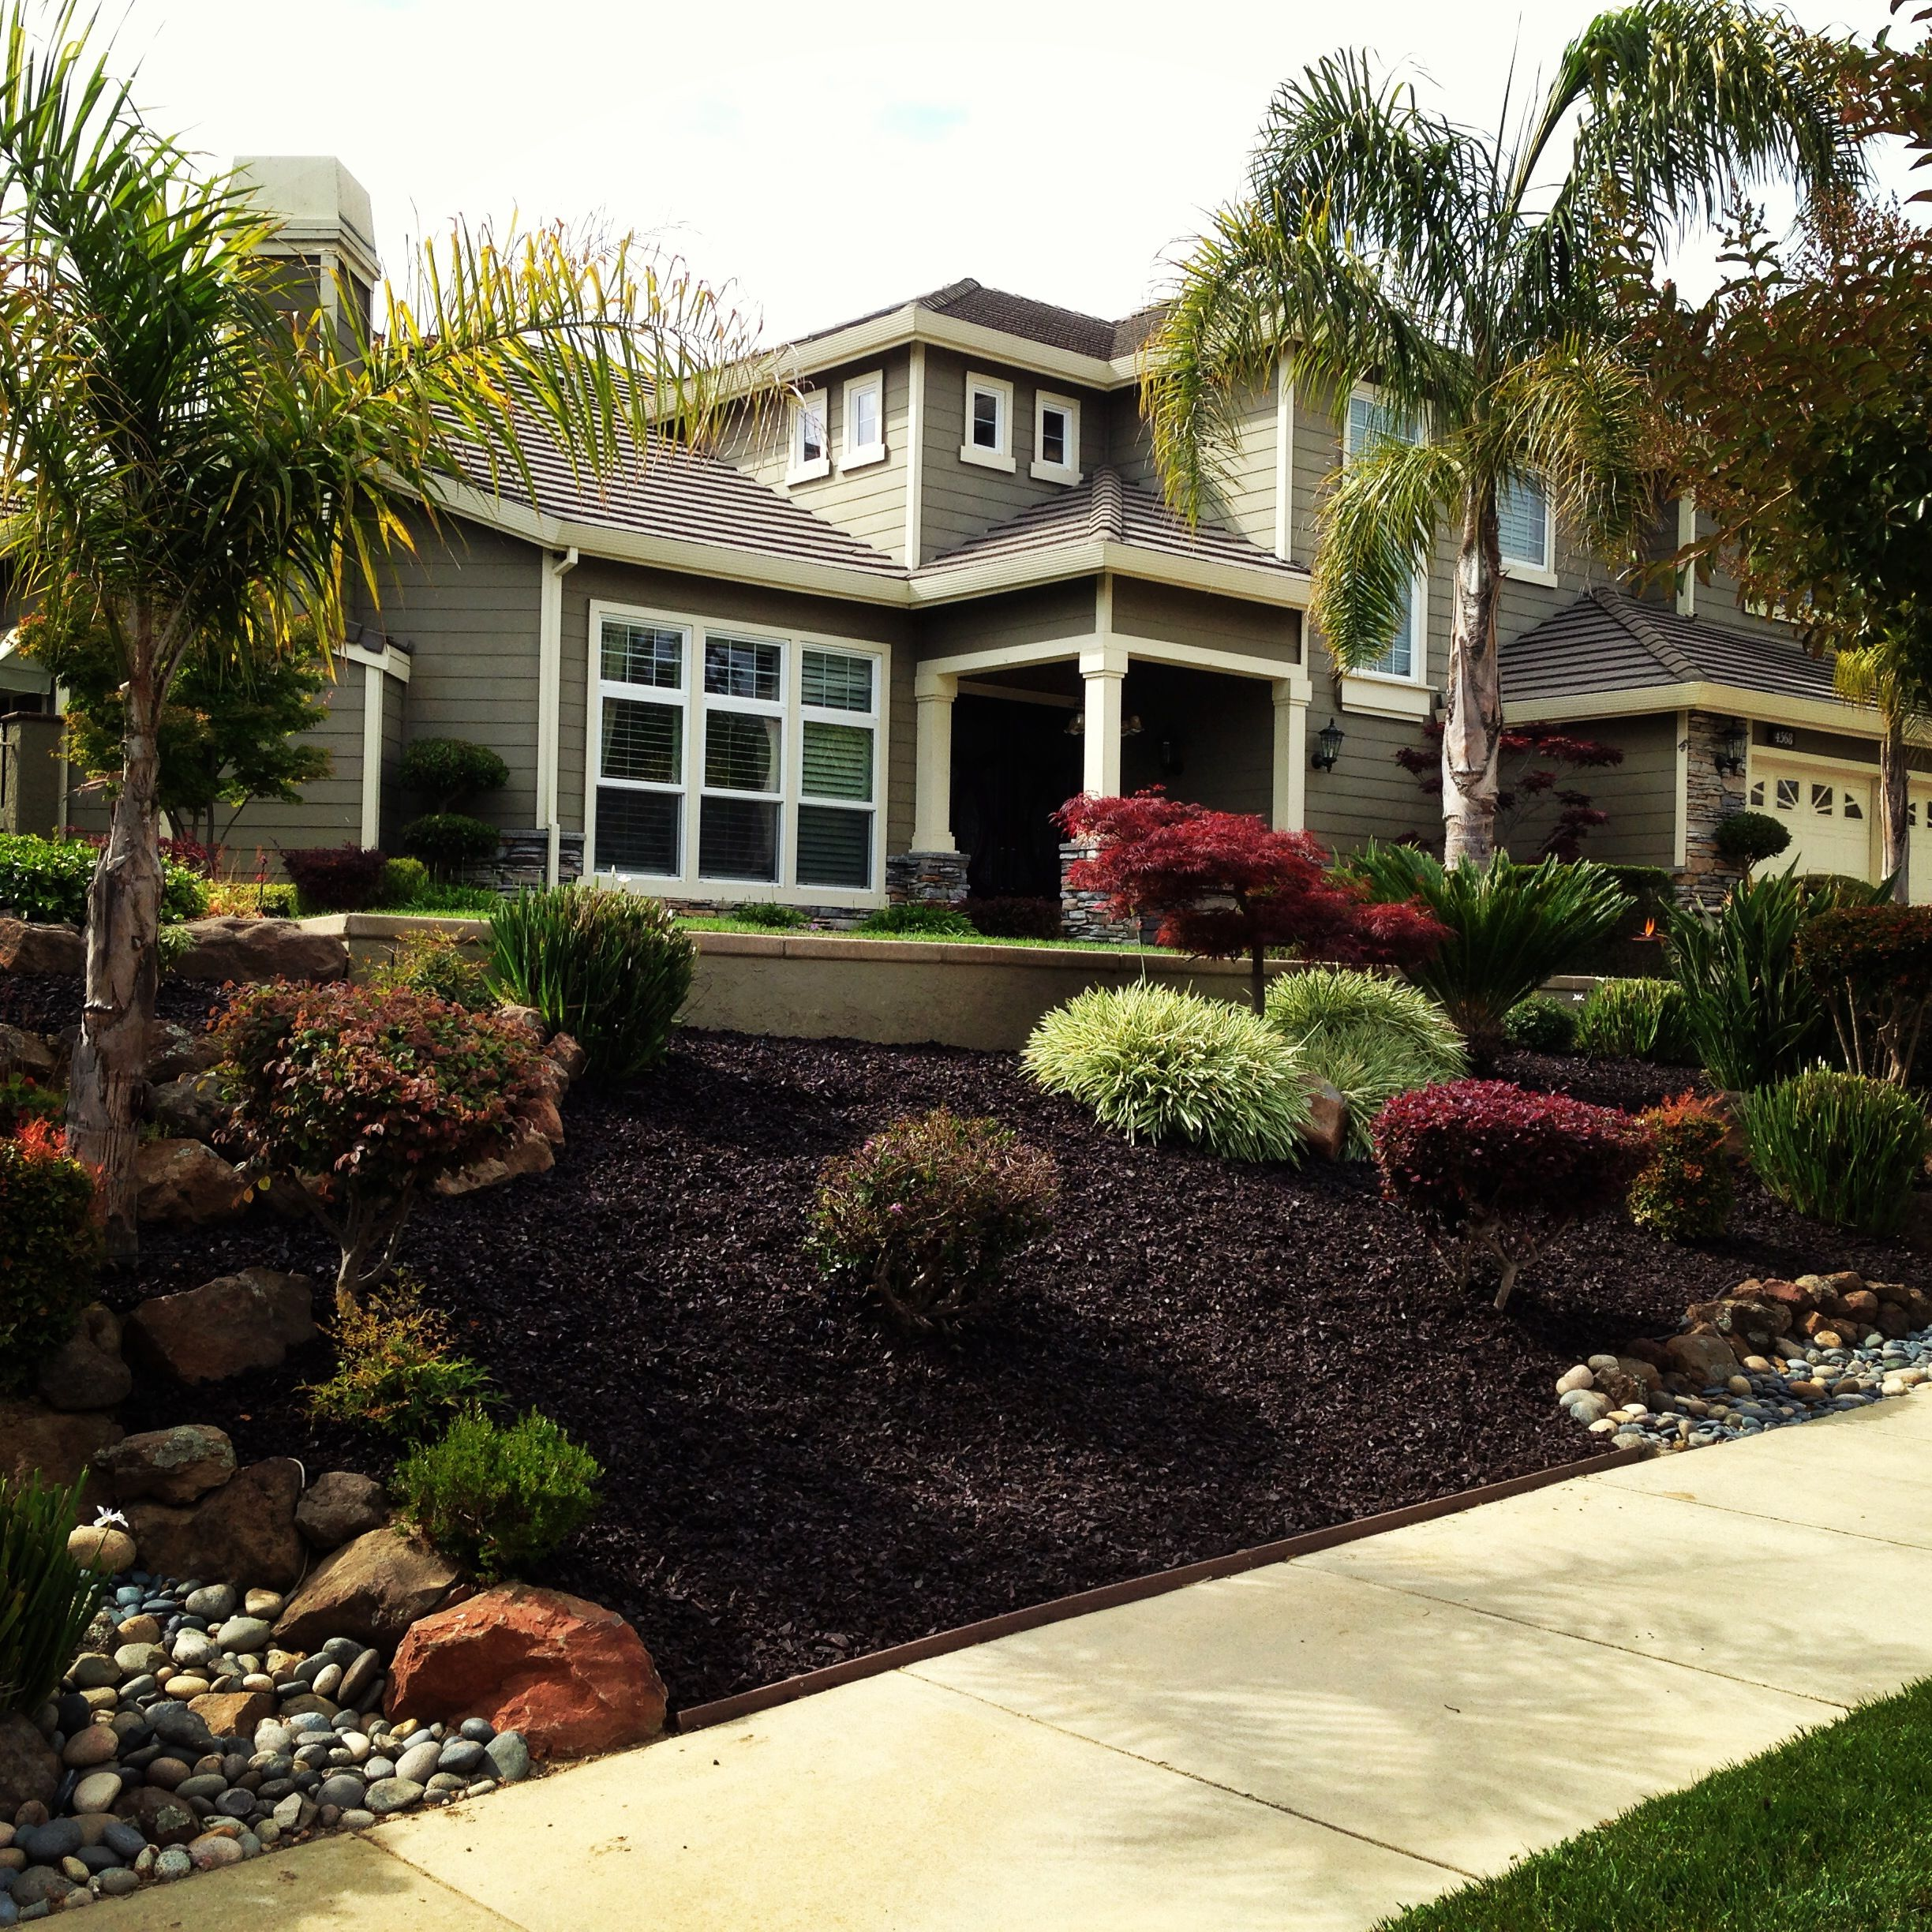 Use of rubber mulch (recycled tires) provides a good look; keeps ...